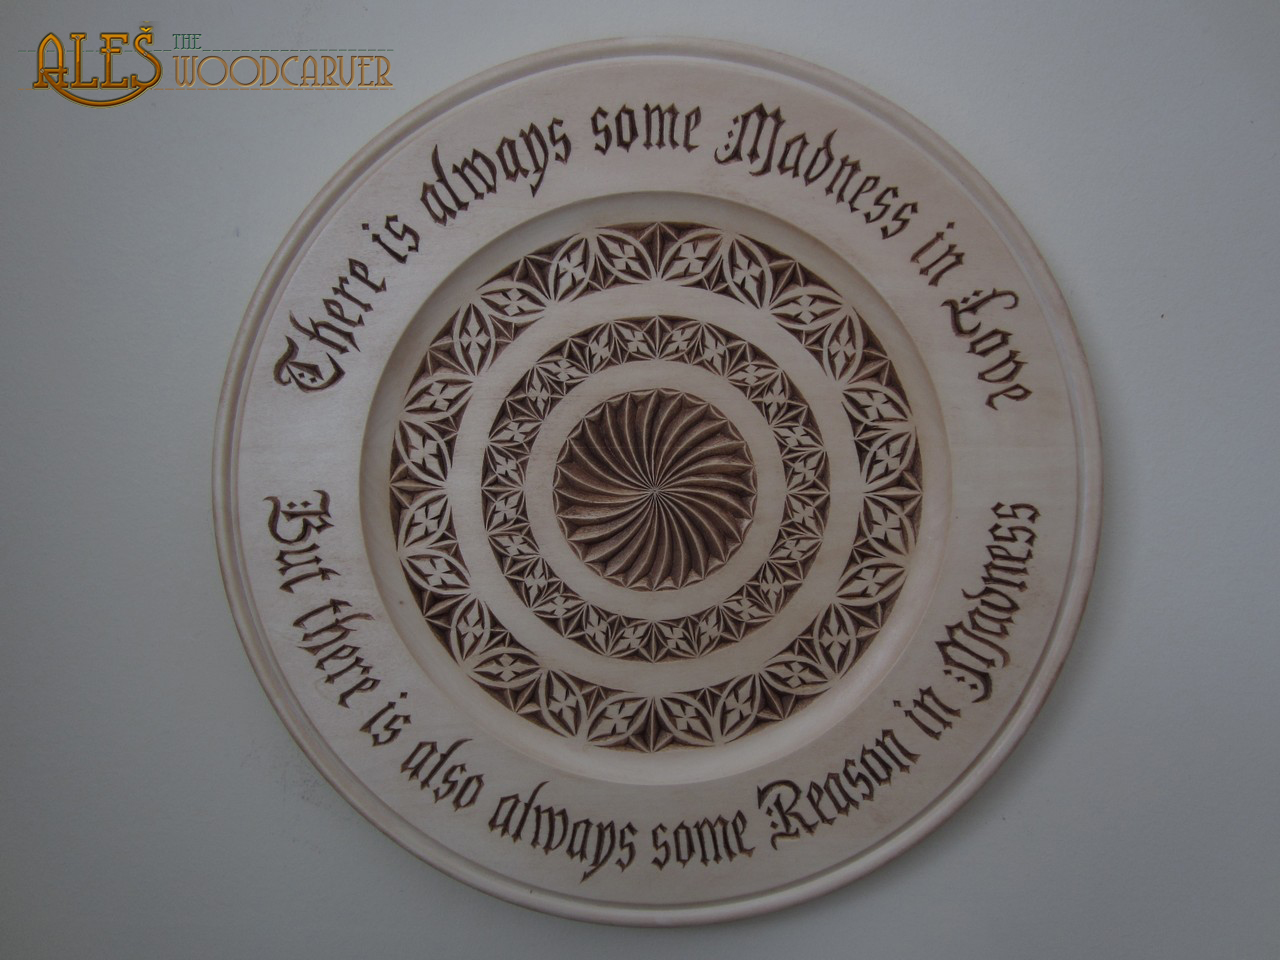 Ales the woodcarver more nietzsche and stokowski plates